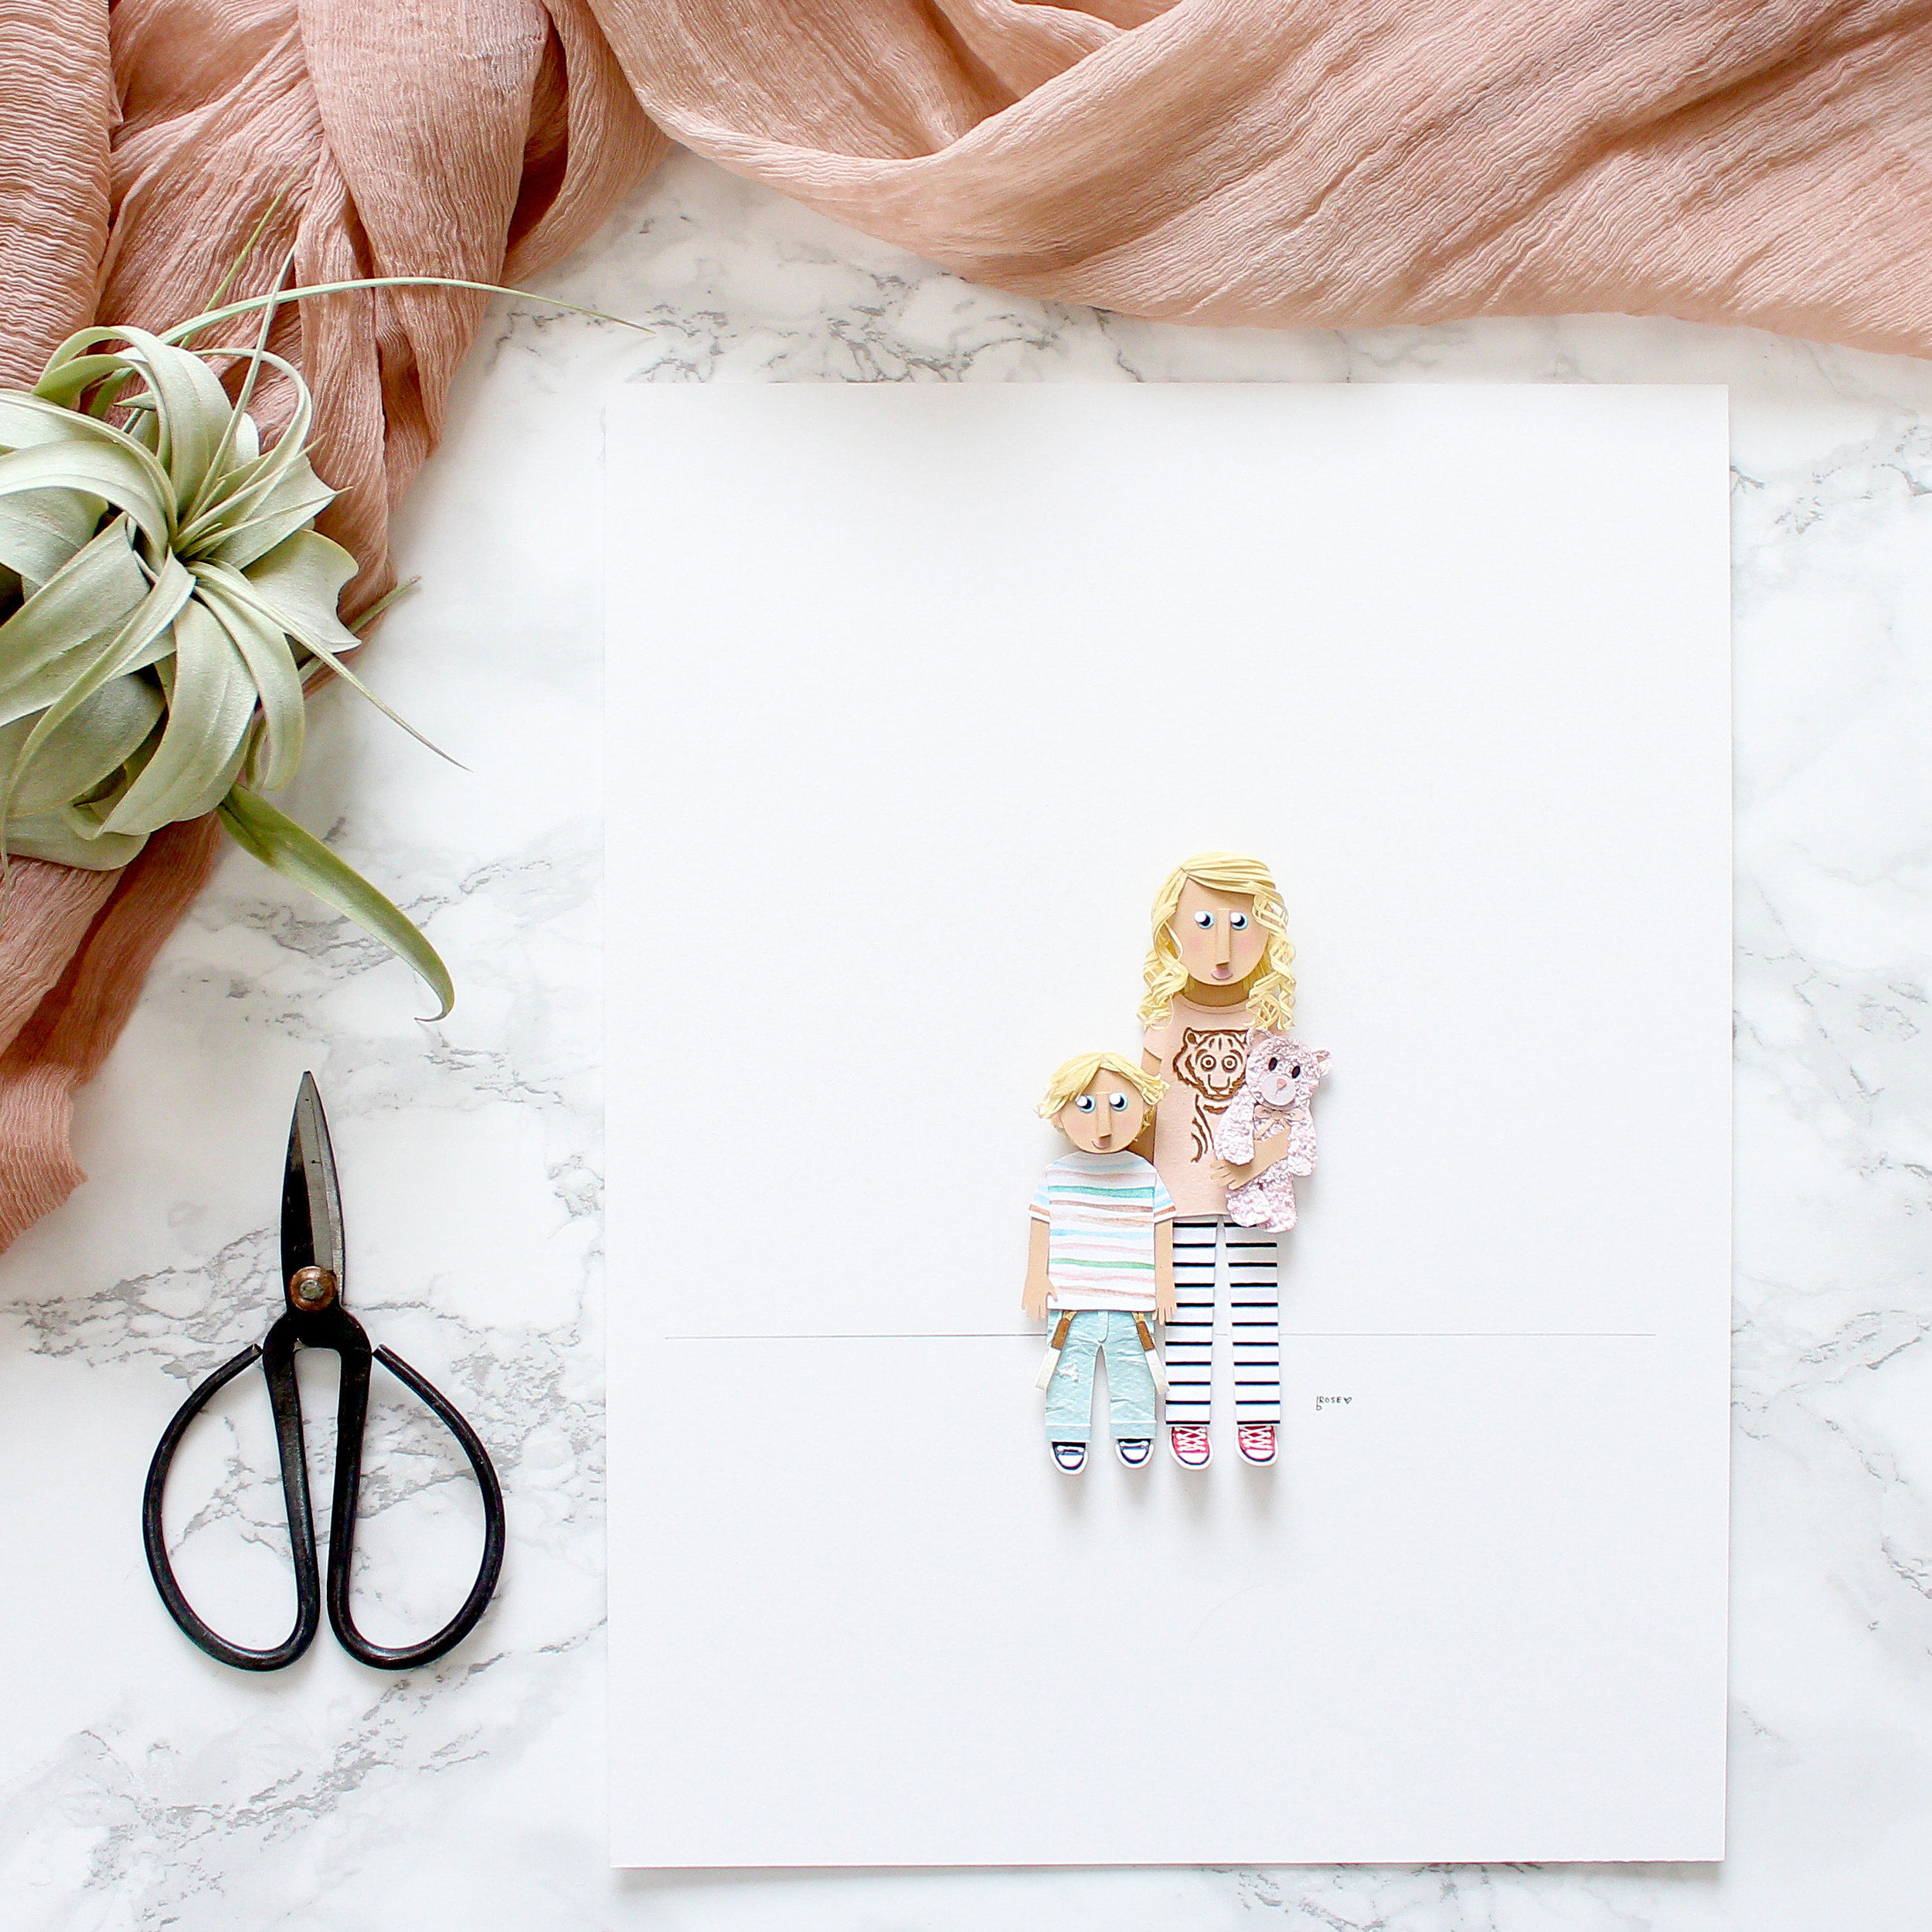 A unique spin on your traditional family photo by paper artist Brittani Rose Paper.